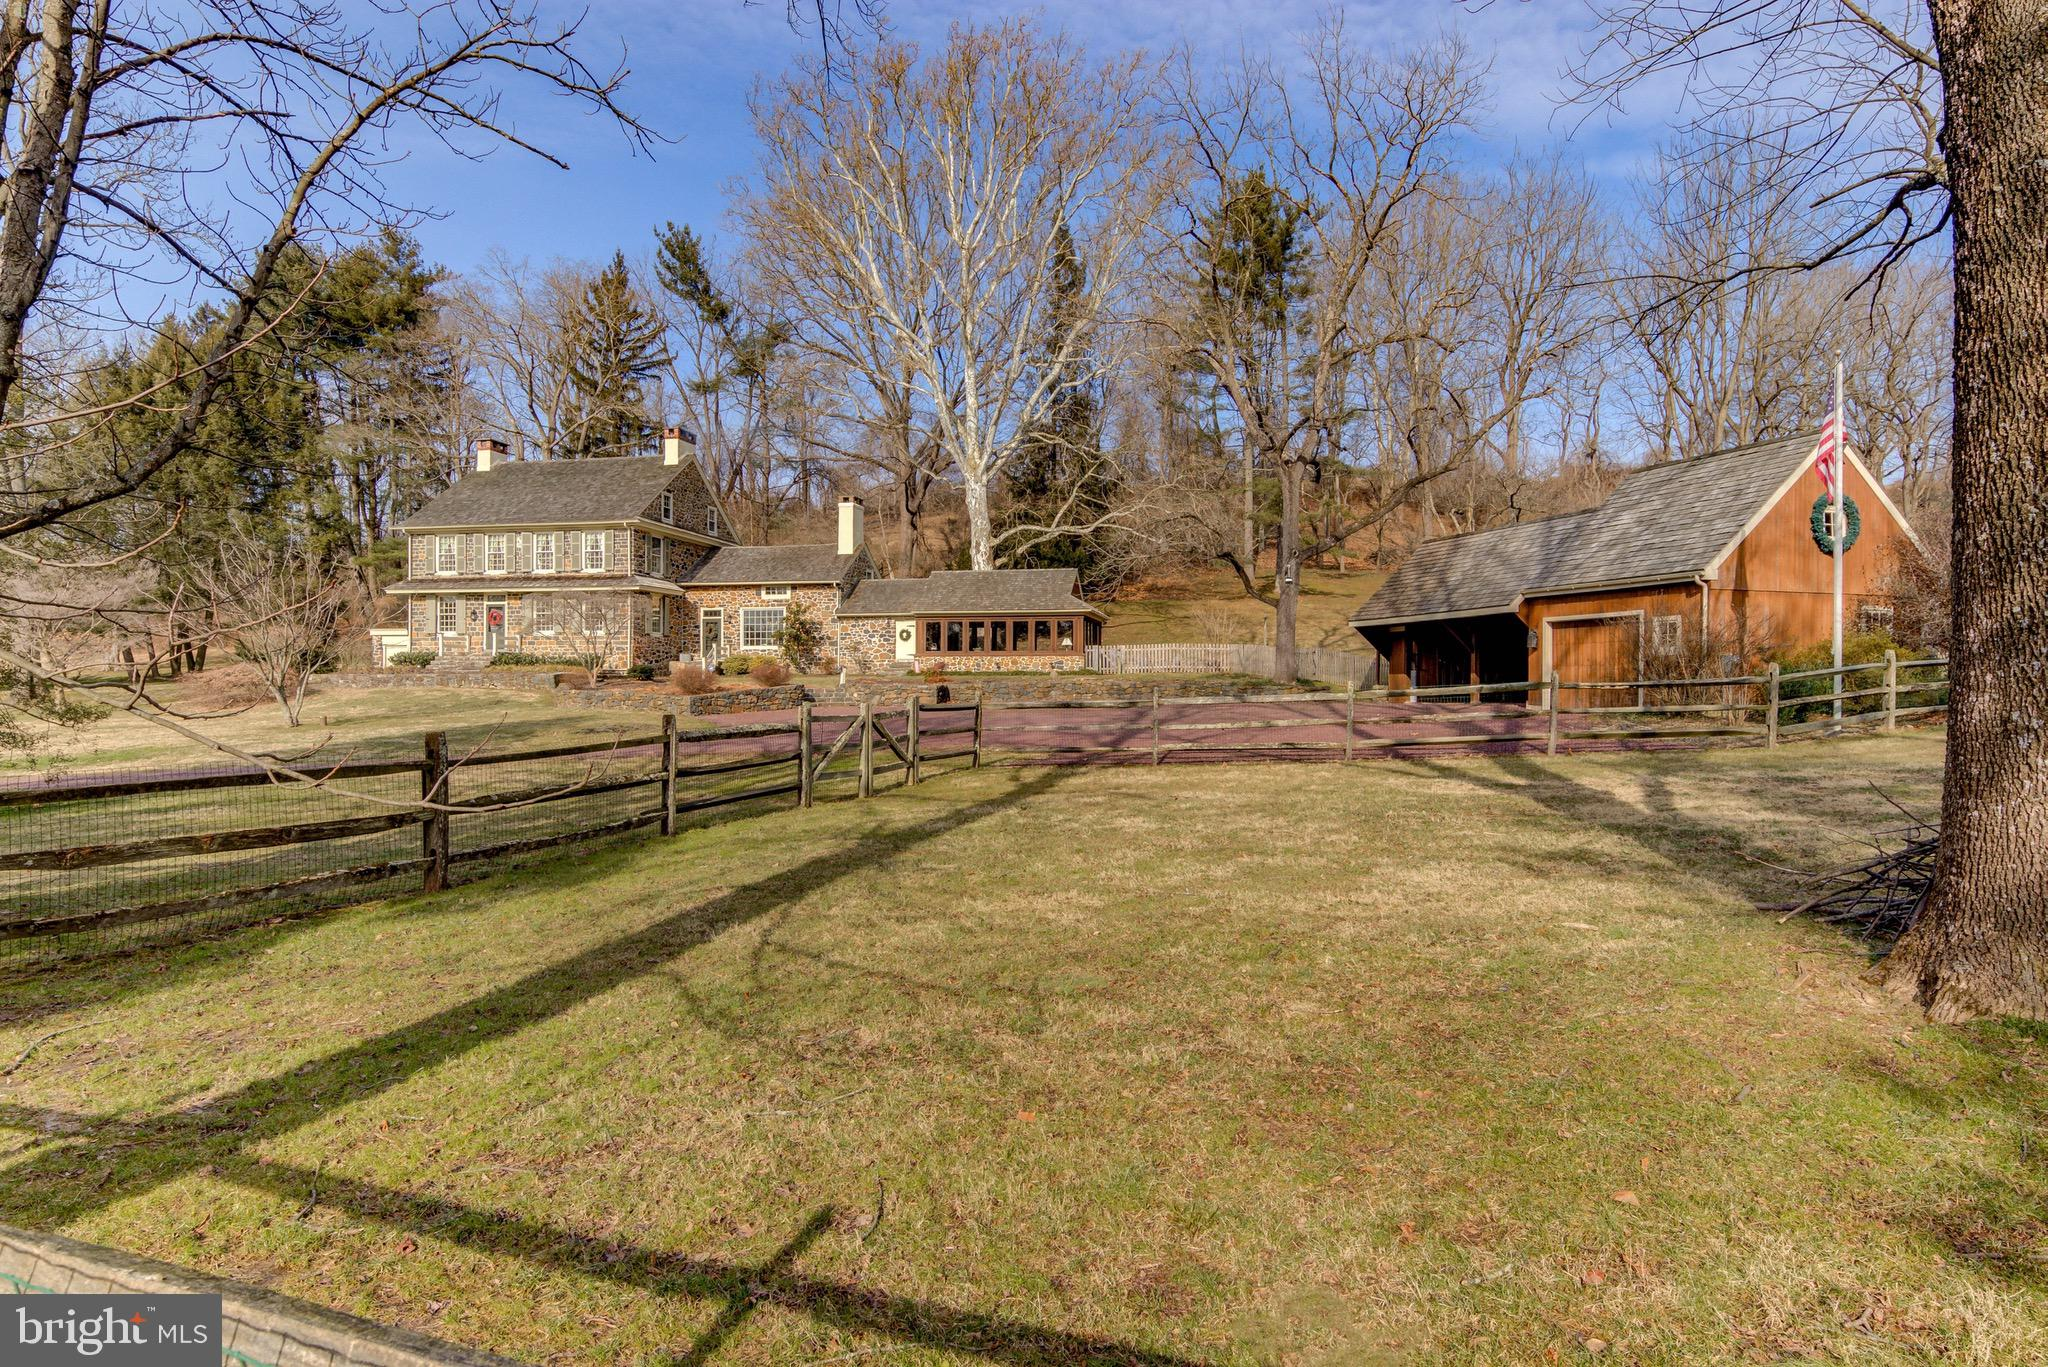 965 W STRASBURG ROAD, WEST CHESTER, PA 19382